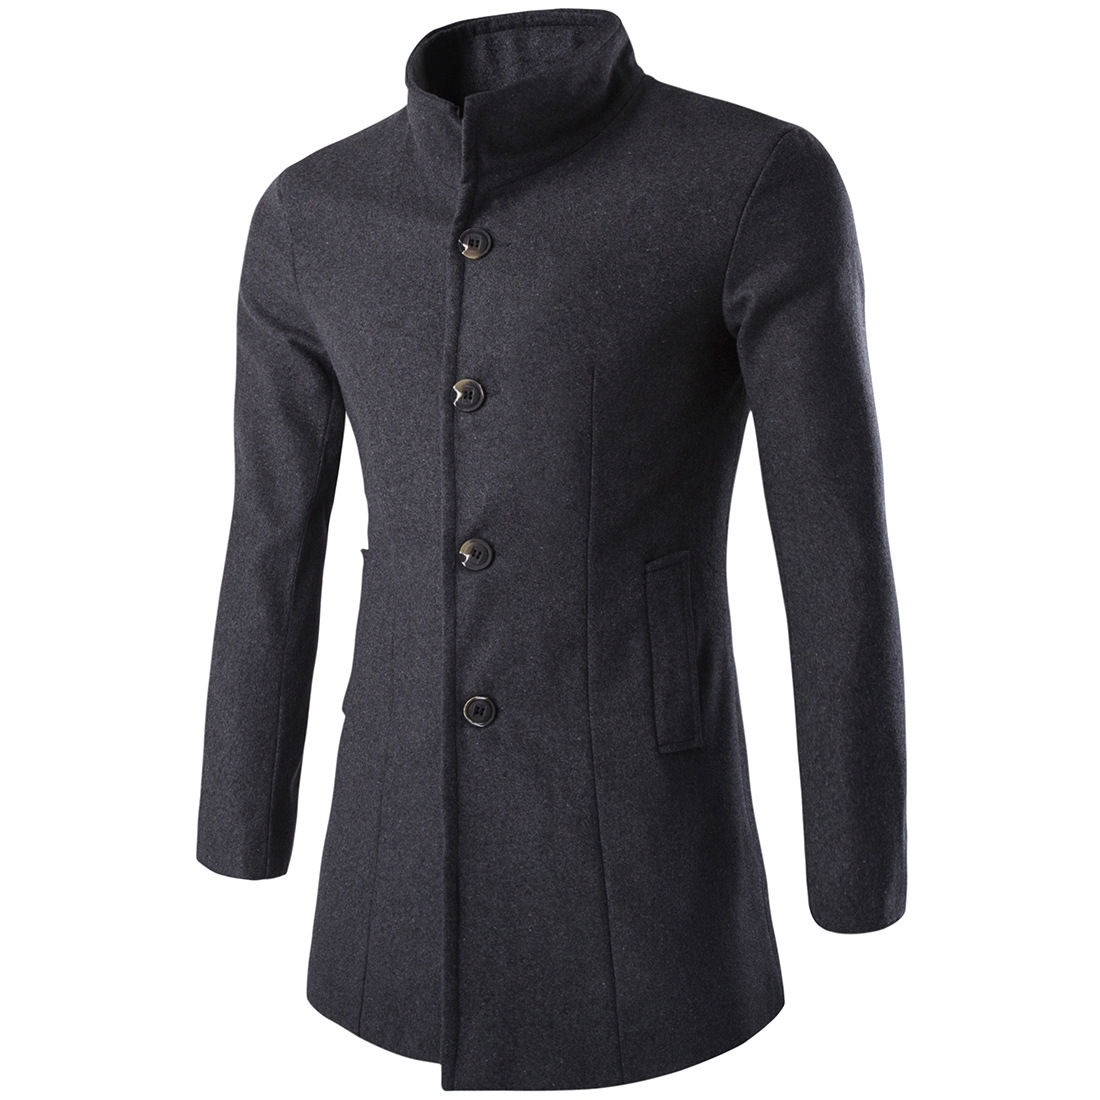 Men Coats Autumn Fashion Jacket Solid-Wool-Blend Single-Breasted Winter Casual Warm Slim